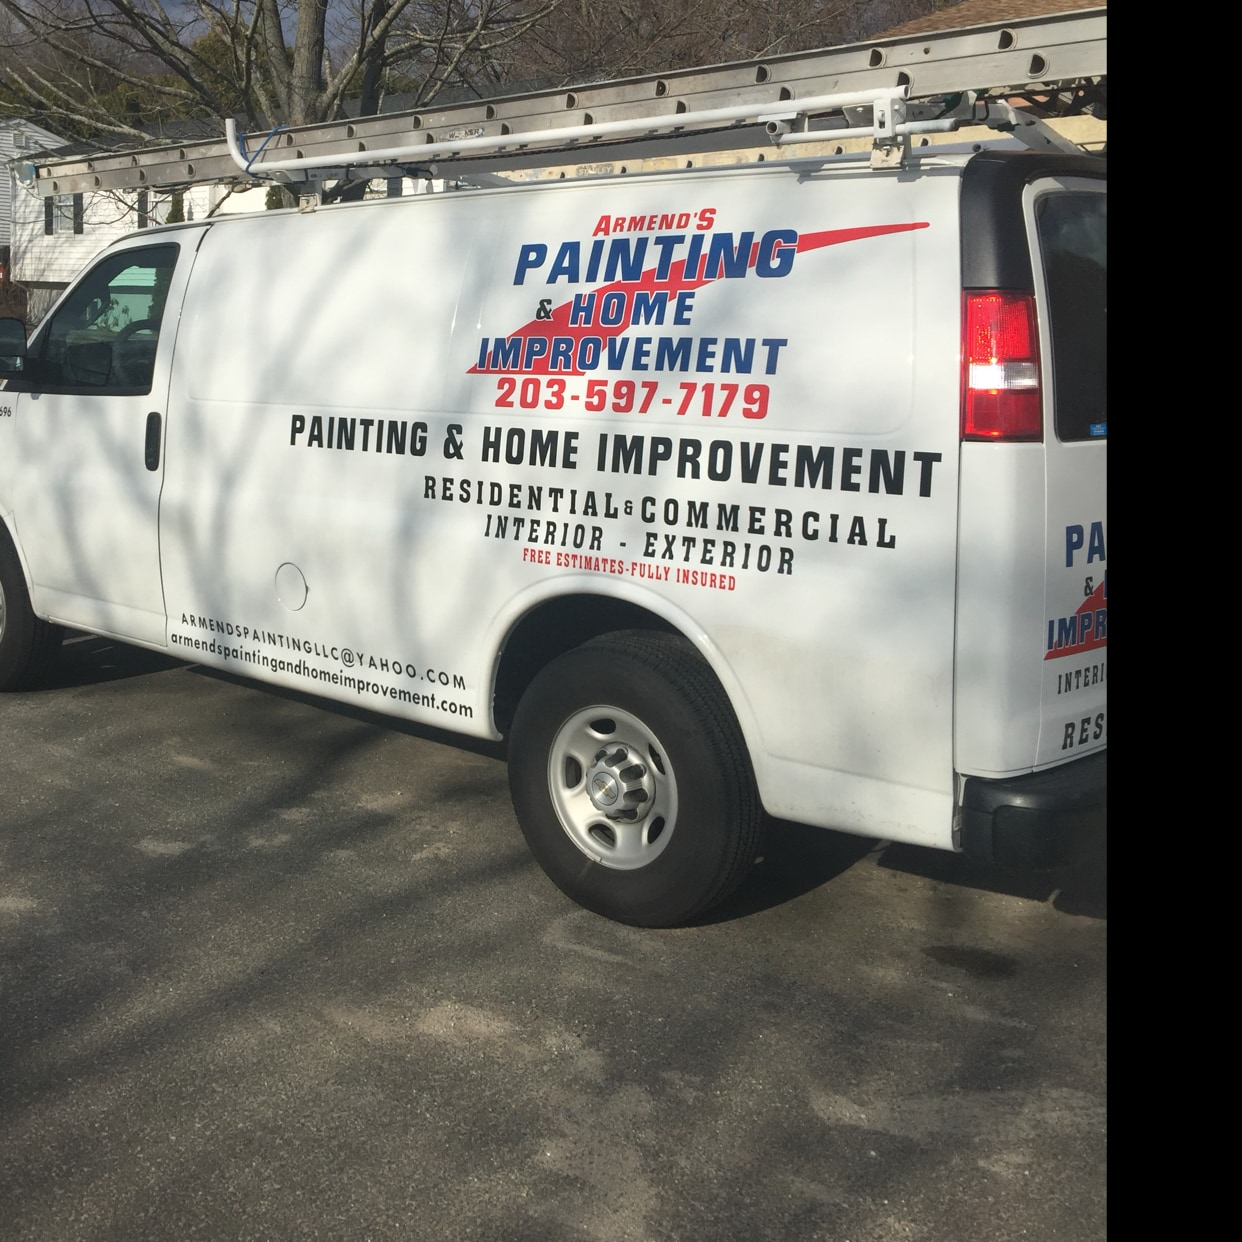 Armend's Painting & Home Improvements LLC